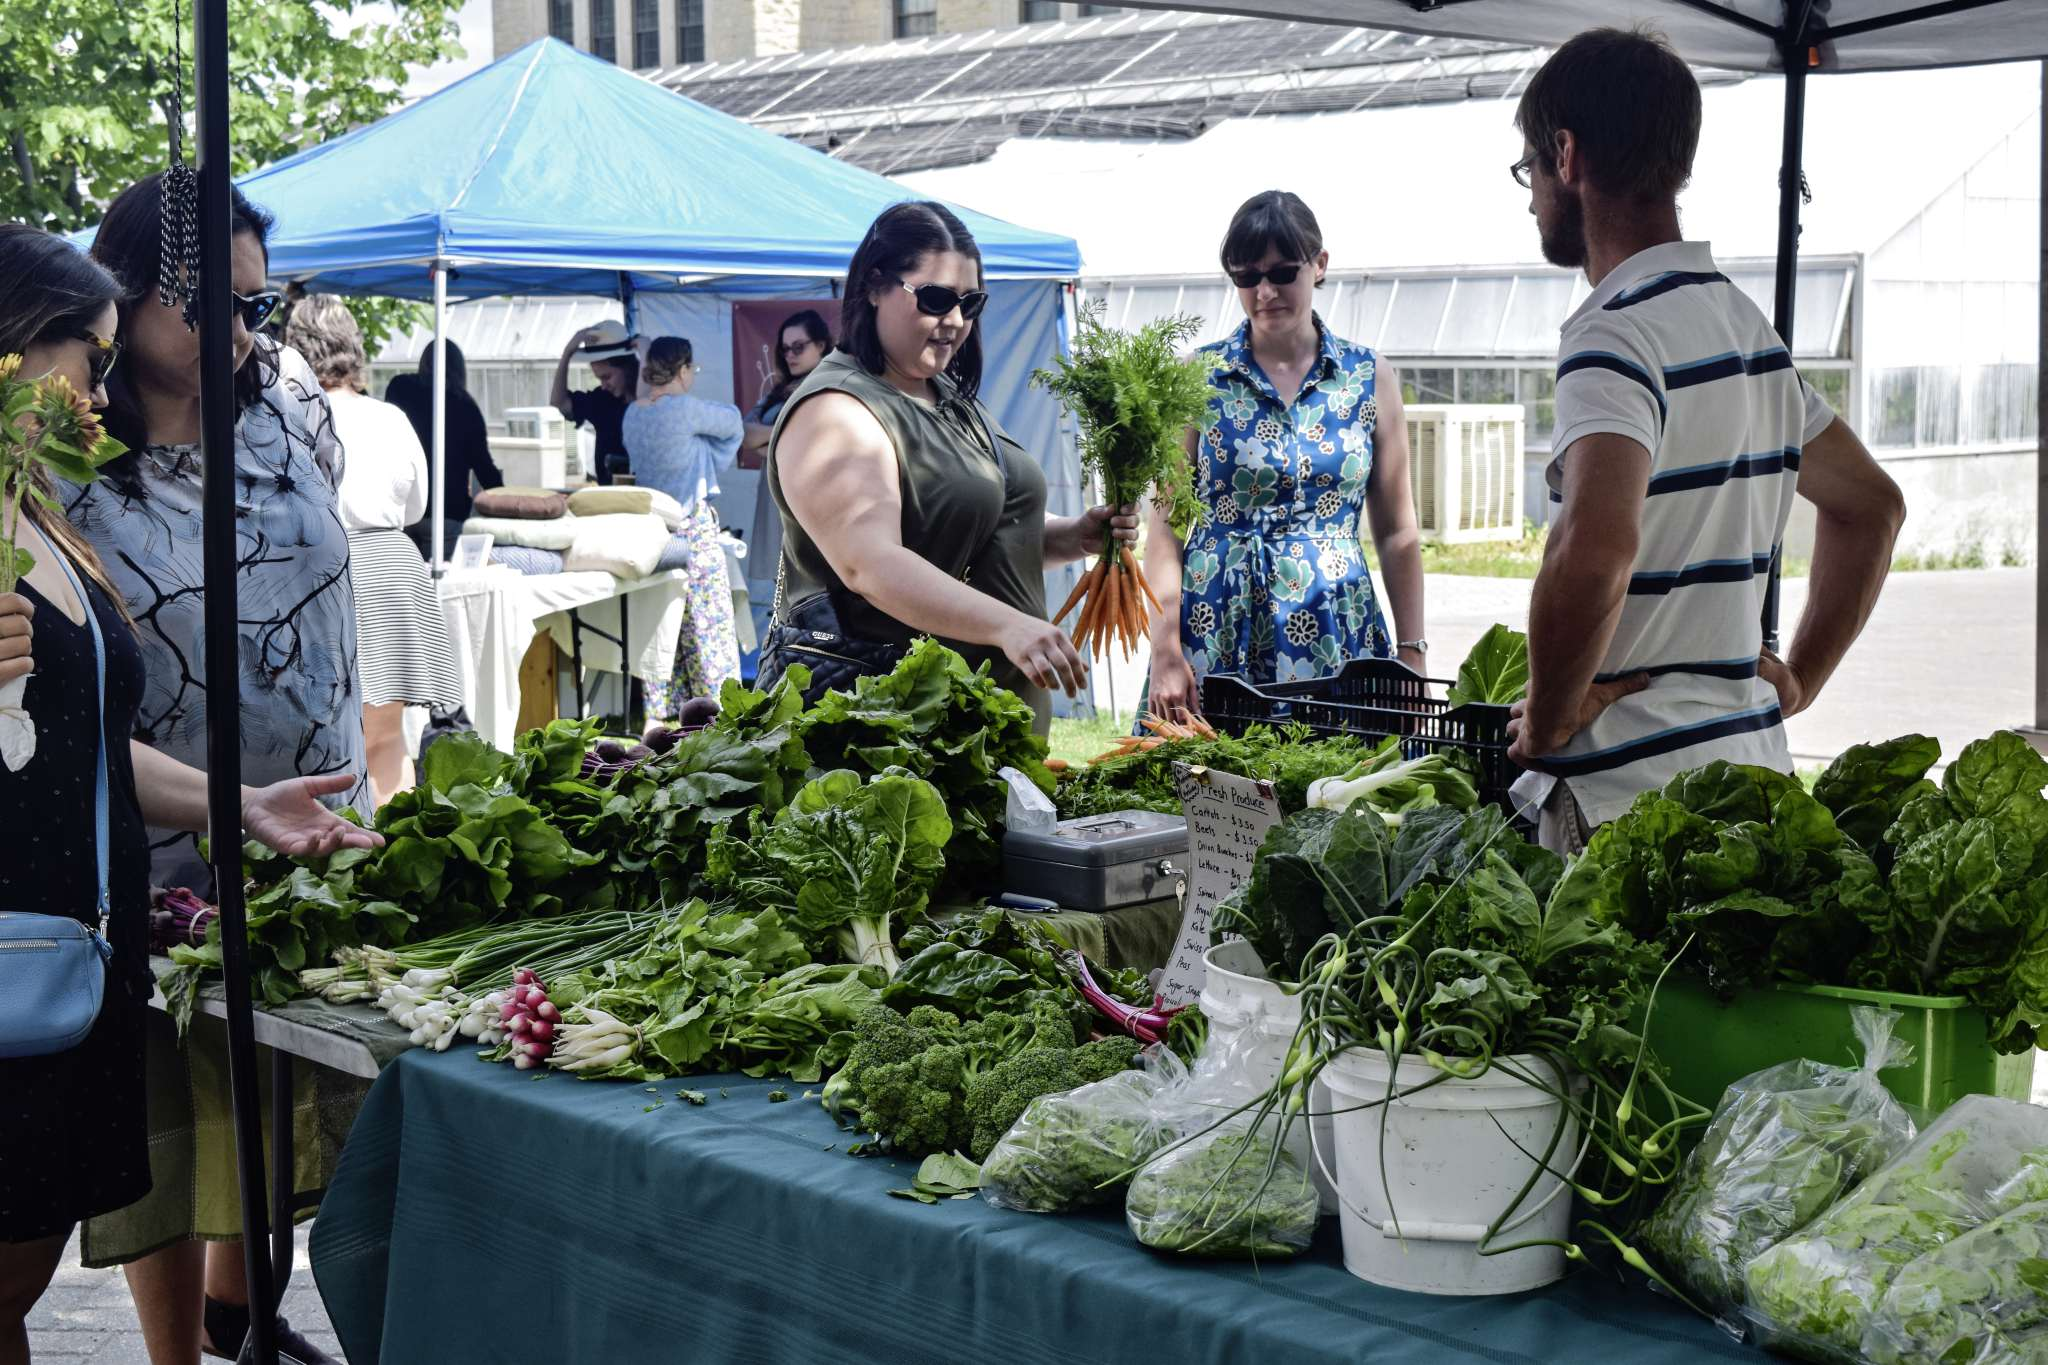 The University of Manitoba's Office of Sustainability has launched a biweekly farmers' market on campus. It runs Tuesdays from 10 a.m. to 3 p.m. The next market date is July 30.